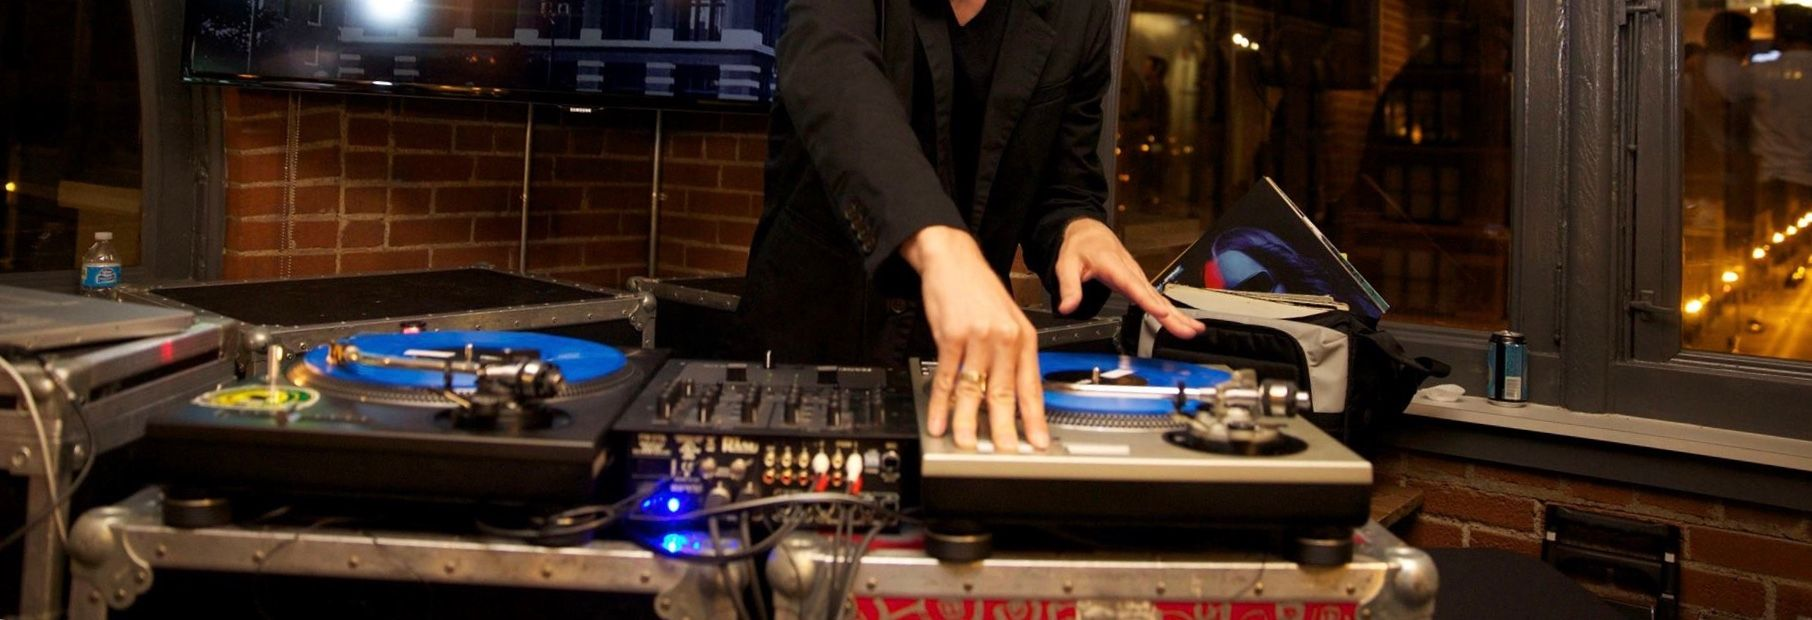 DJ Spinning at a party